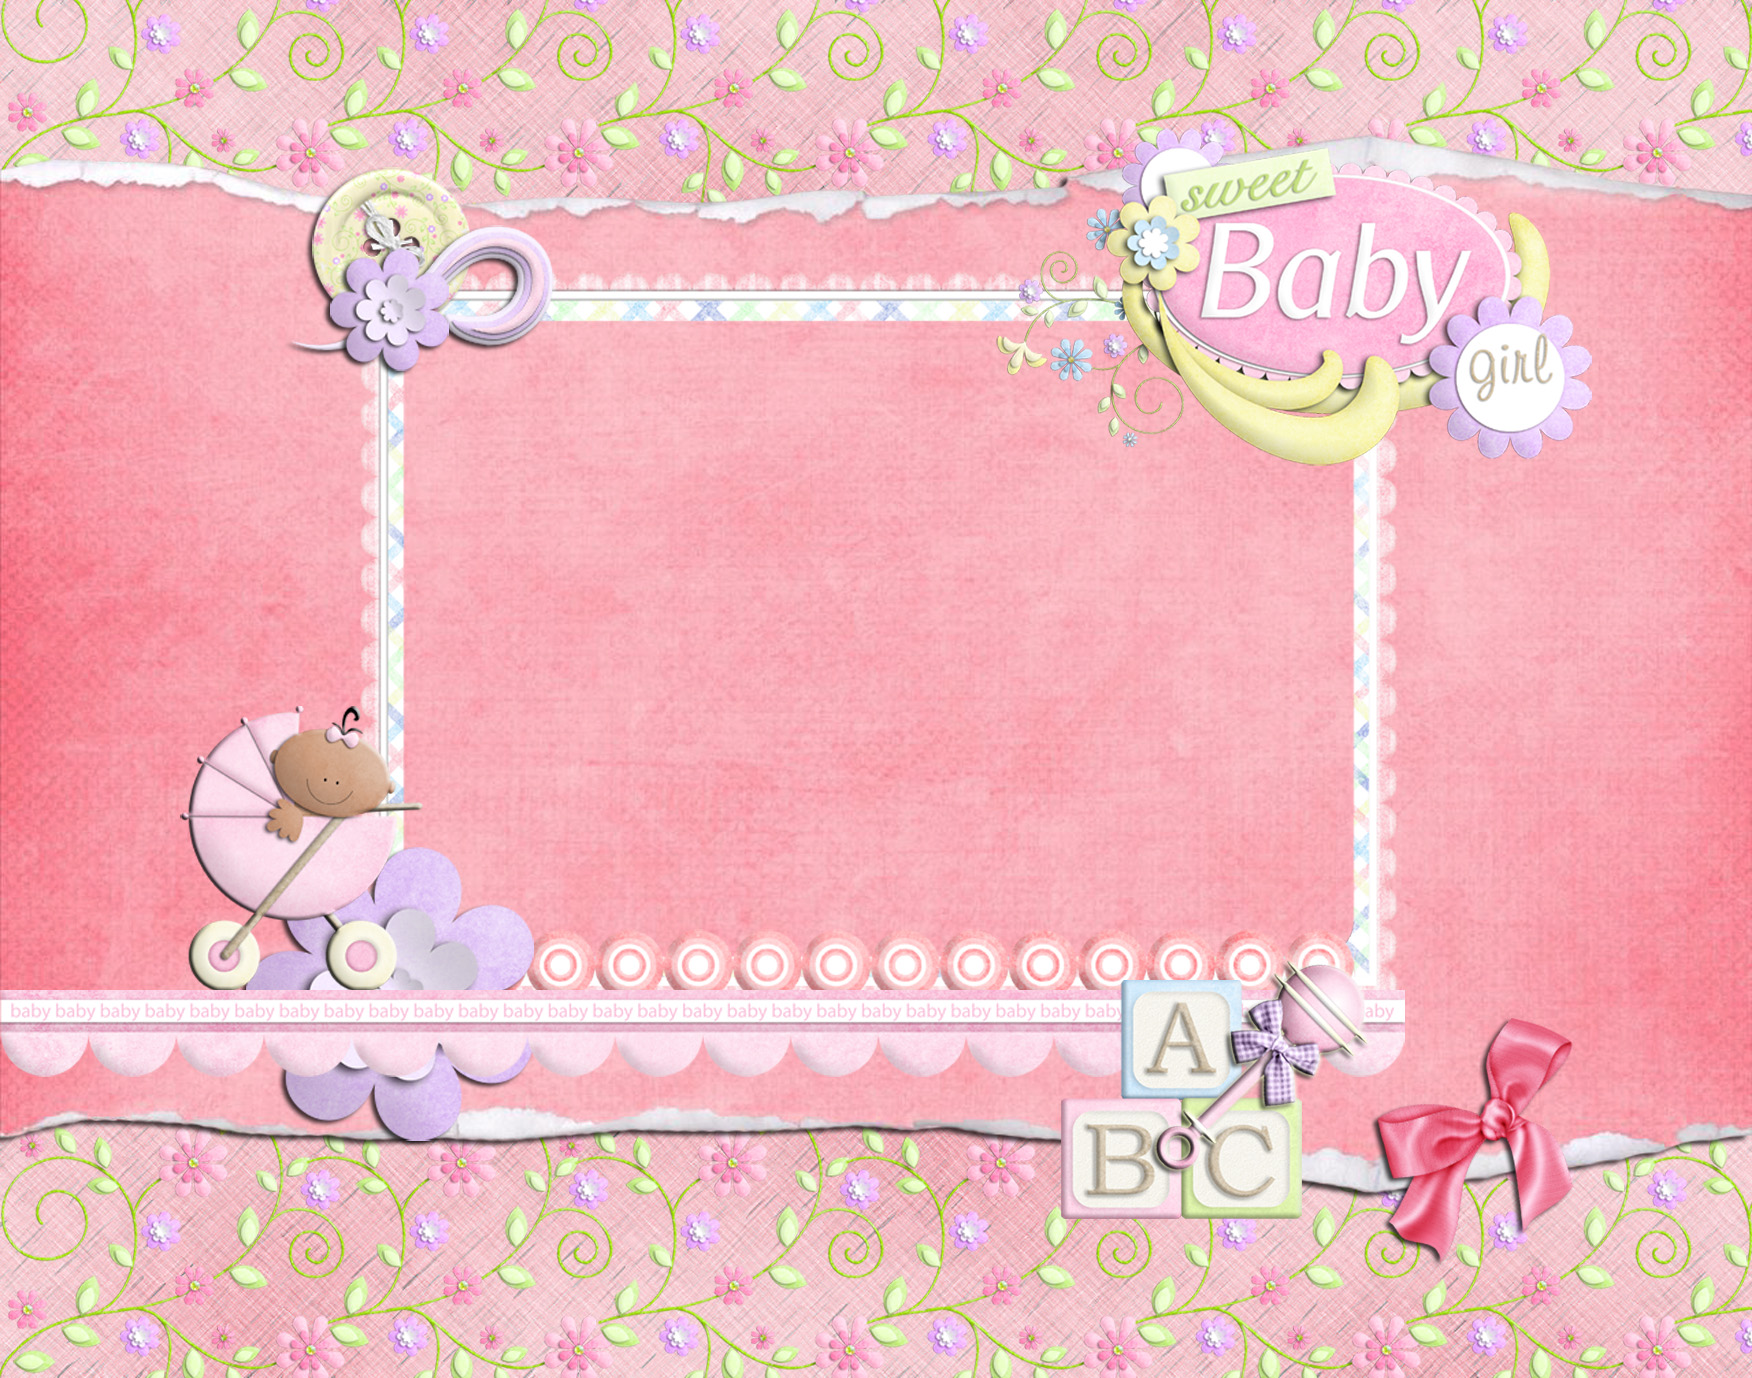 Download Cute Baby Pink Background Images 1752x1378 70 Baby